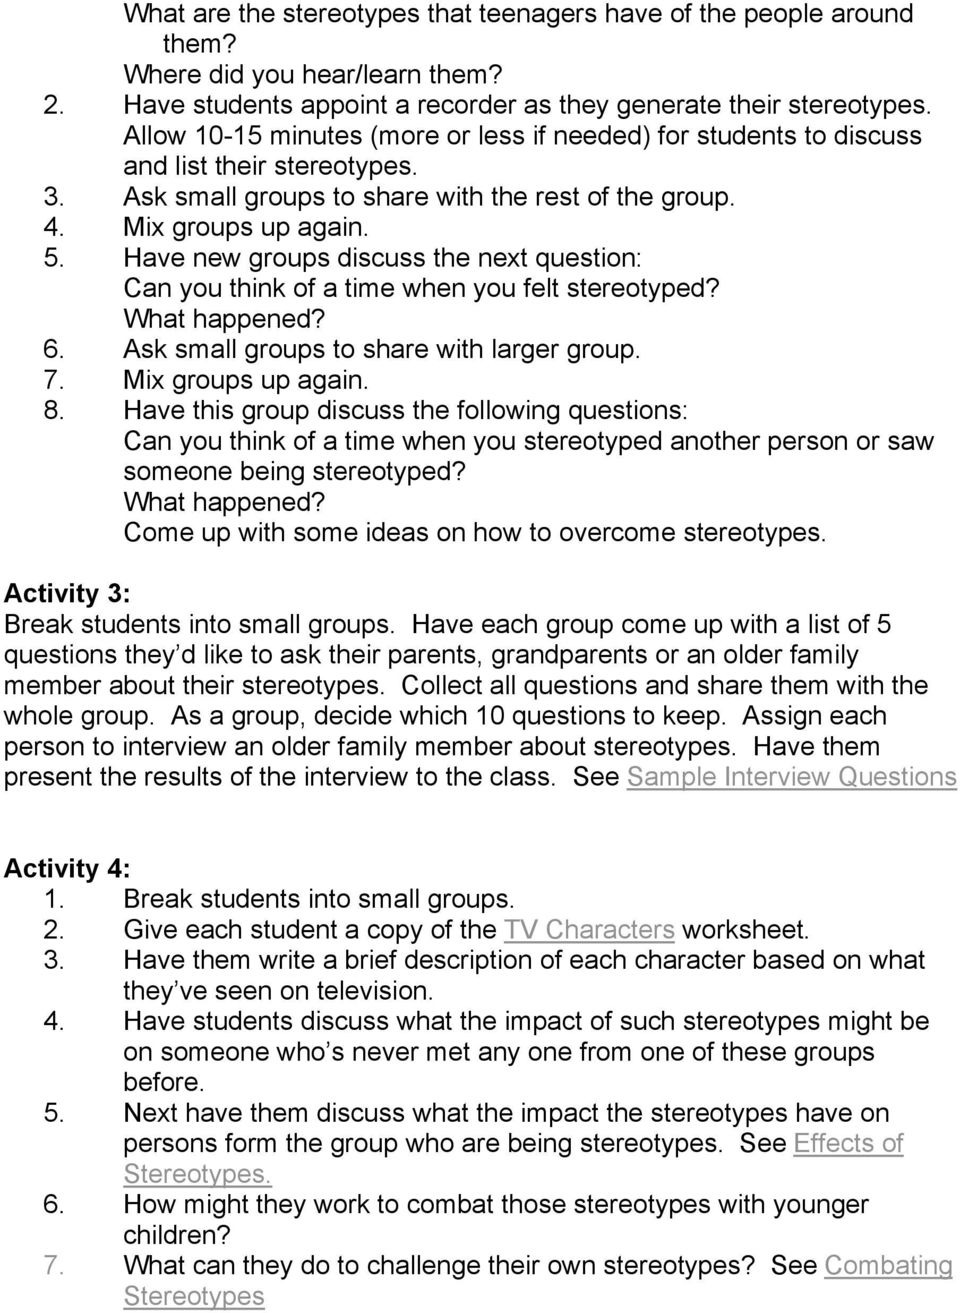 Have new groups discuss the next question: Can you think of a time when you felt stereotyped? What happened? 6. Ask small groups to share with larger group. 7. Mix groups up again. 8.